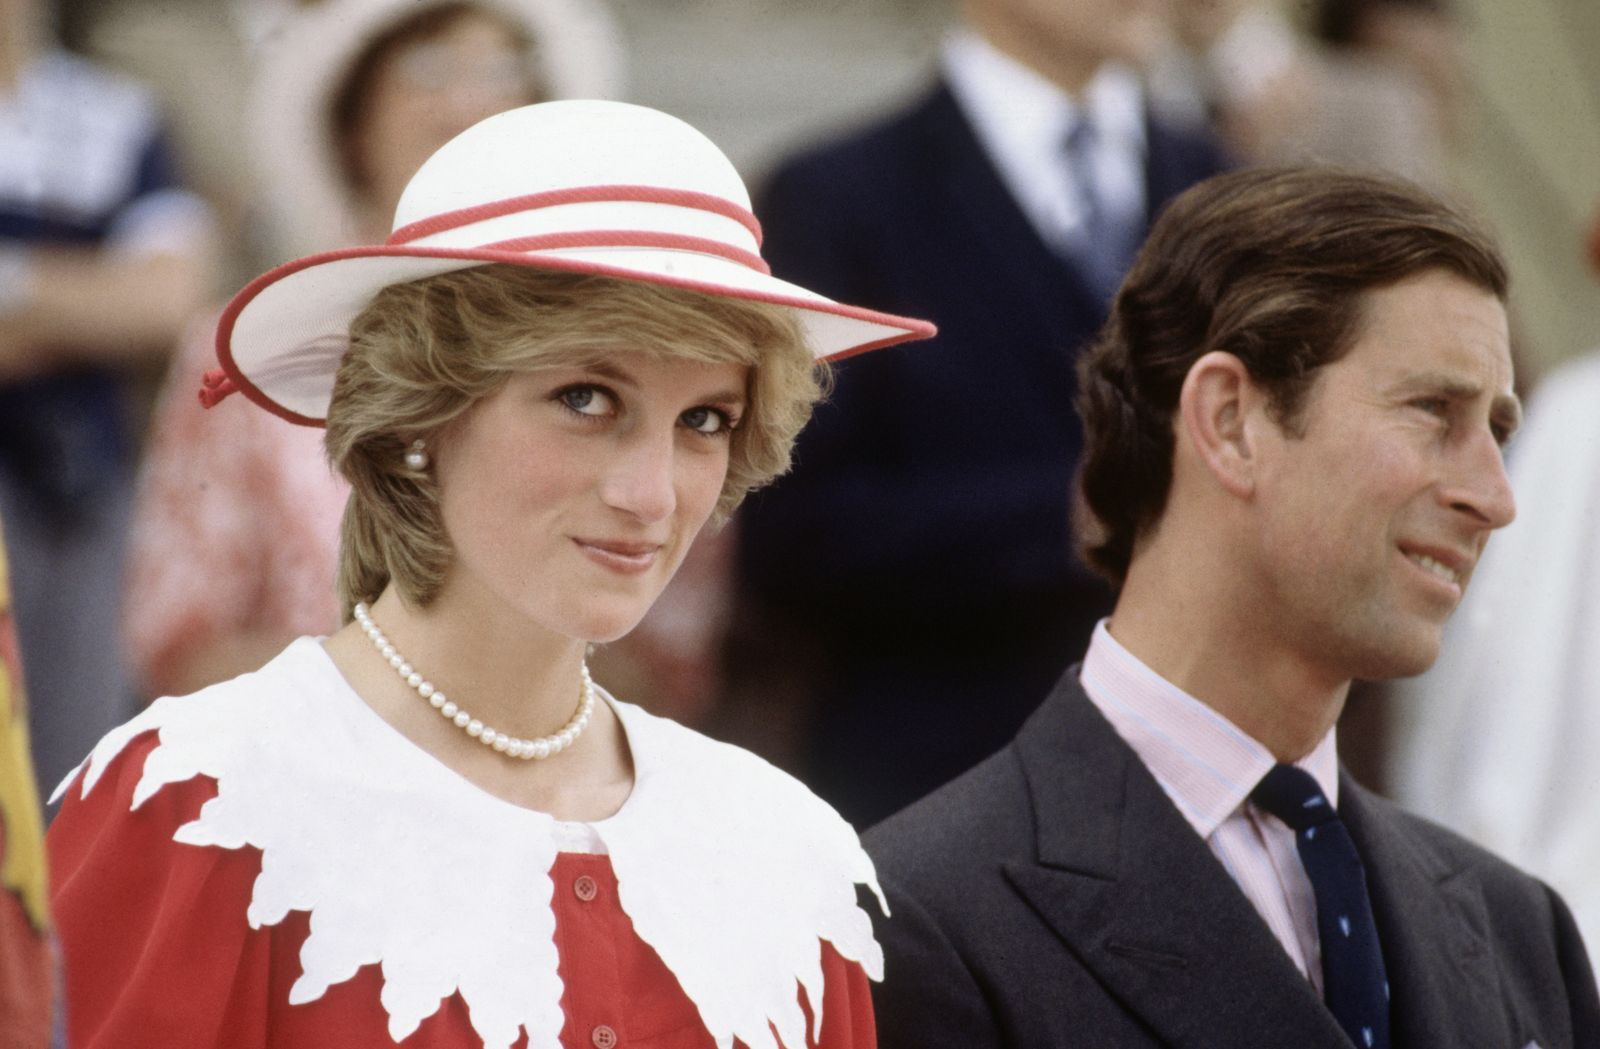 Princess Diana and Prince Charles at the Royal Tour of Canada on June 29, 1983 in Edmonton, Alberta, Canada | Photo: Getty Images